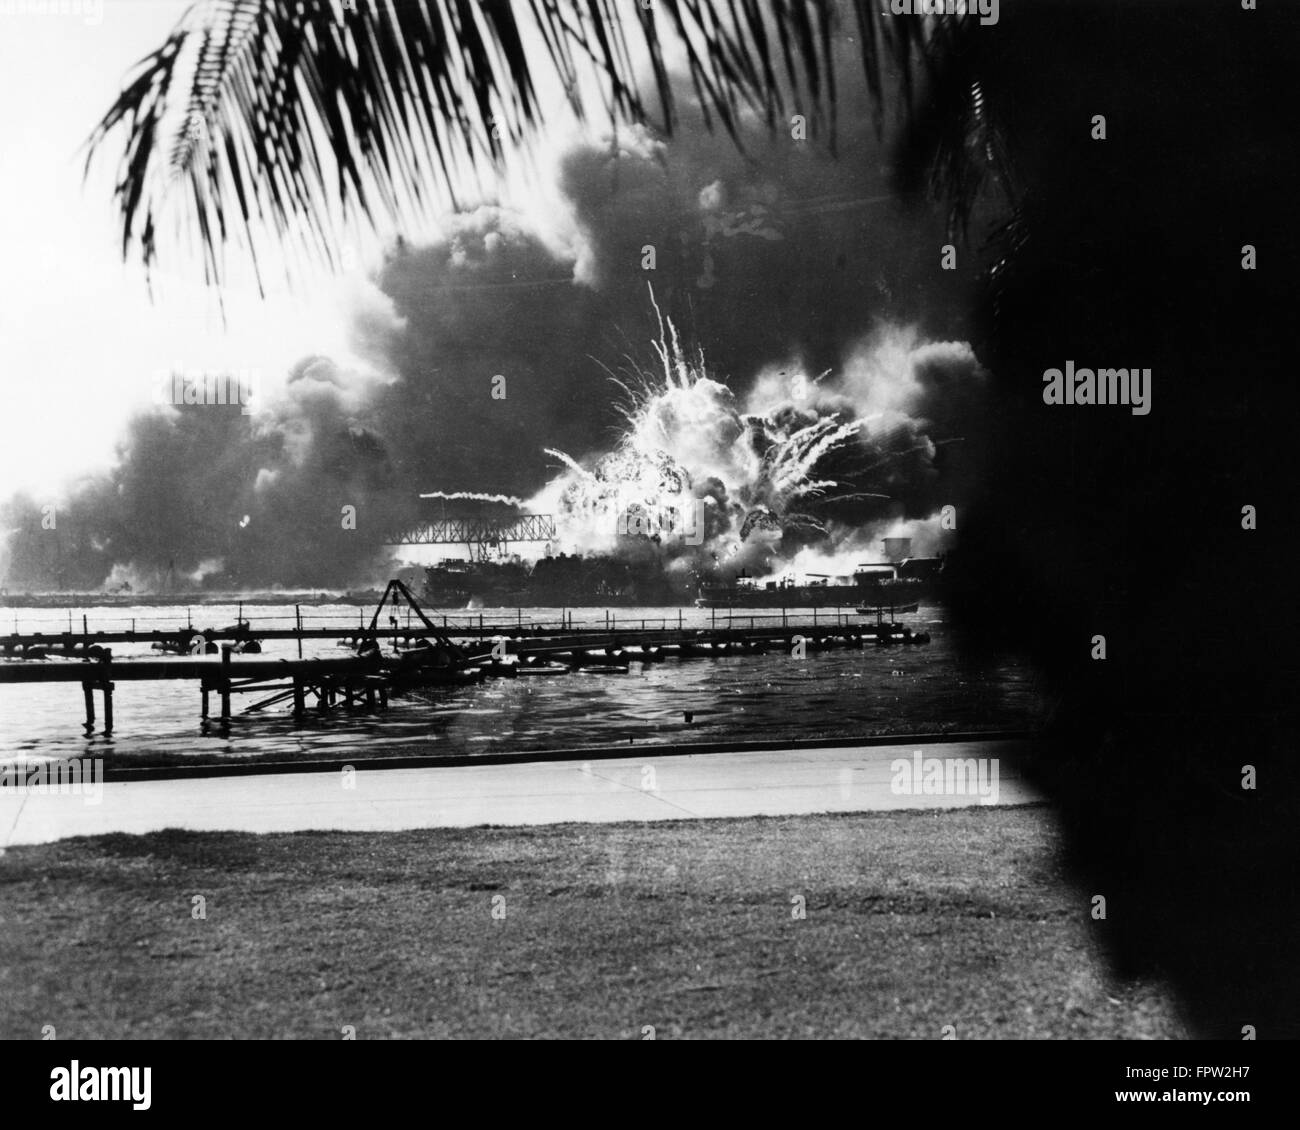 1940s BOMB OR NAVAL ARTILLERY SHELL EXPLODING DURING JAPANESE ATTACK ON PEARL HARBOR DECEMBER 7 1941 - Stock Image